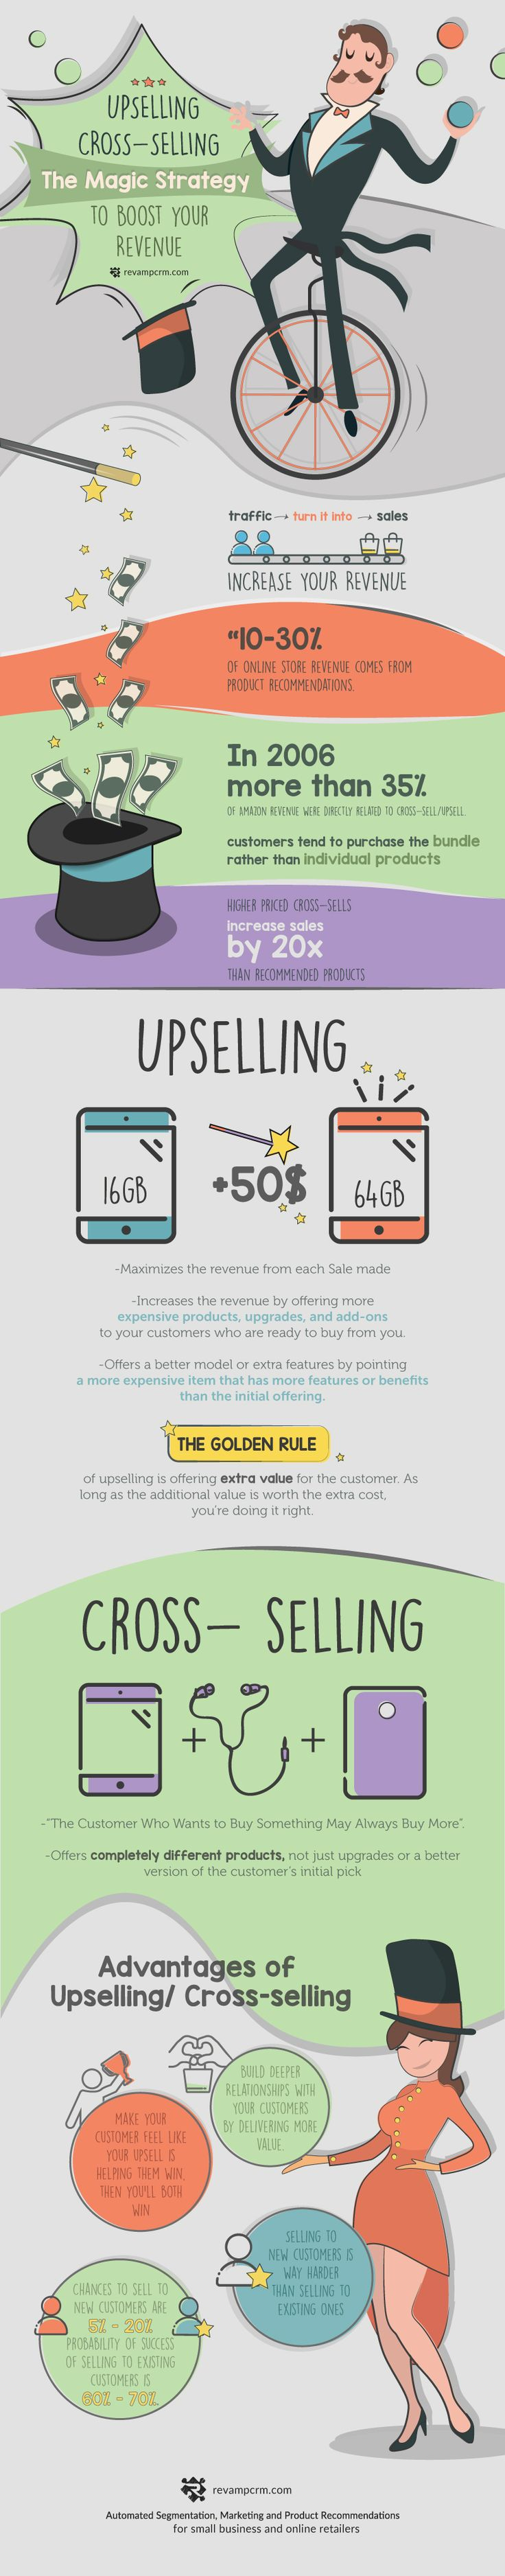 Upselling & Cross-Selling: The Magic Strategy to Boost Ecommerce Revenue [Infographic]